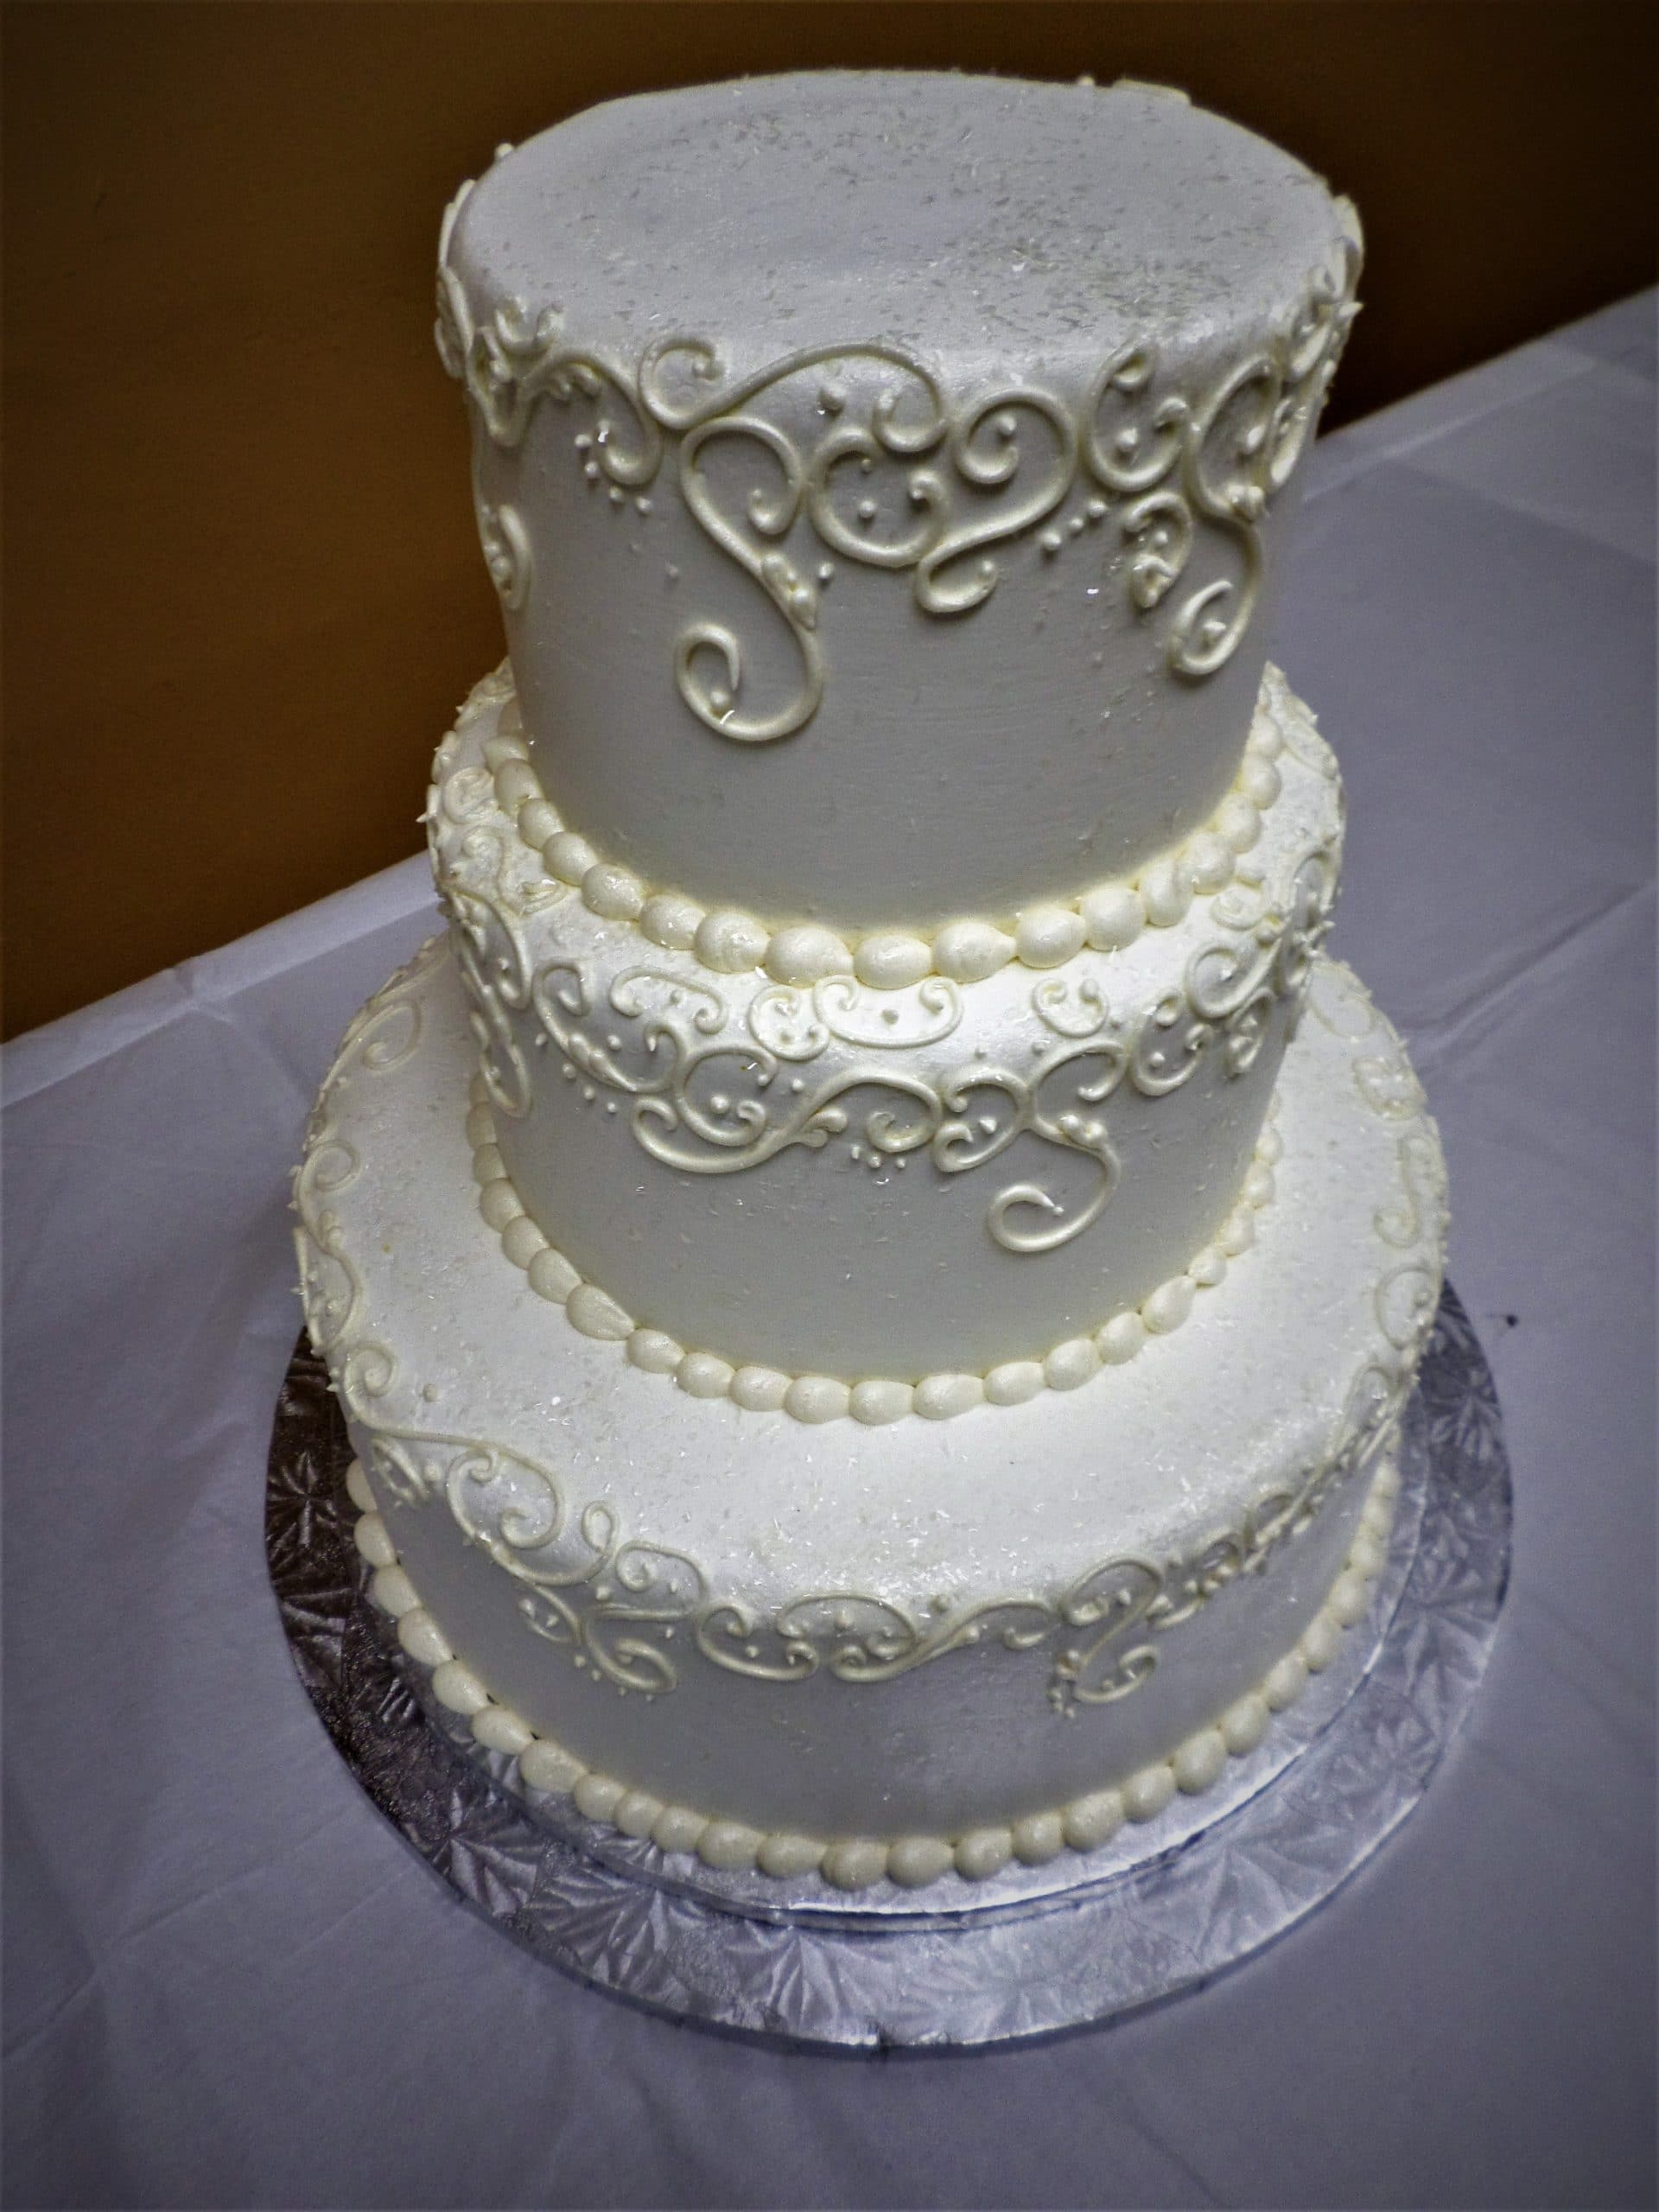 Wedding Cake Simply Aggie S Lace 1 Aggie S Bakery